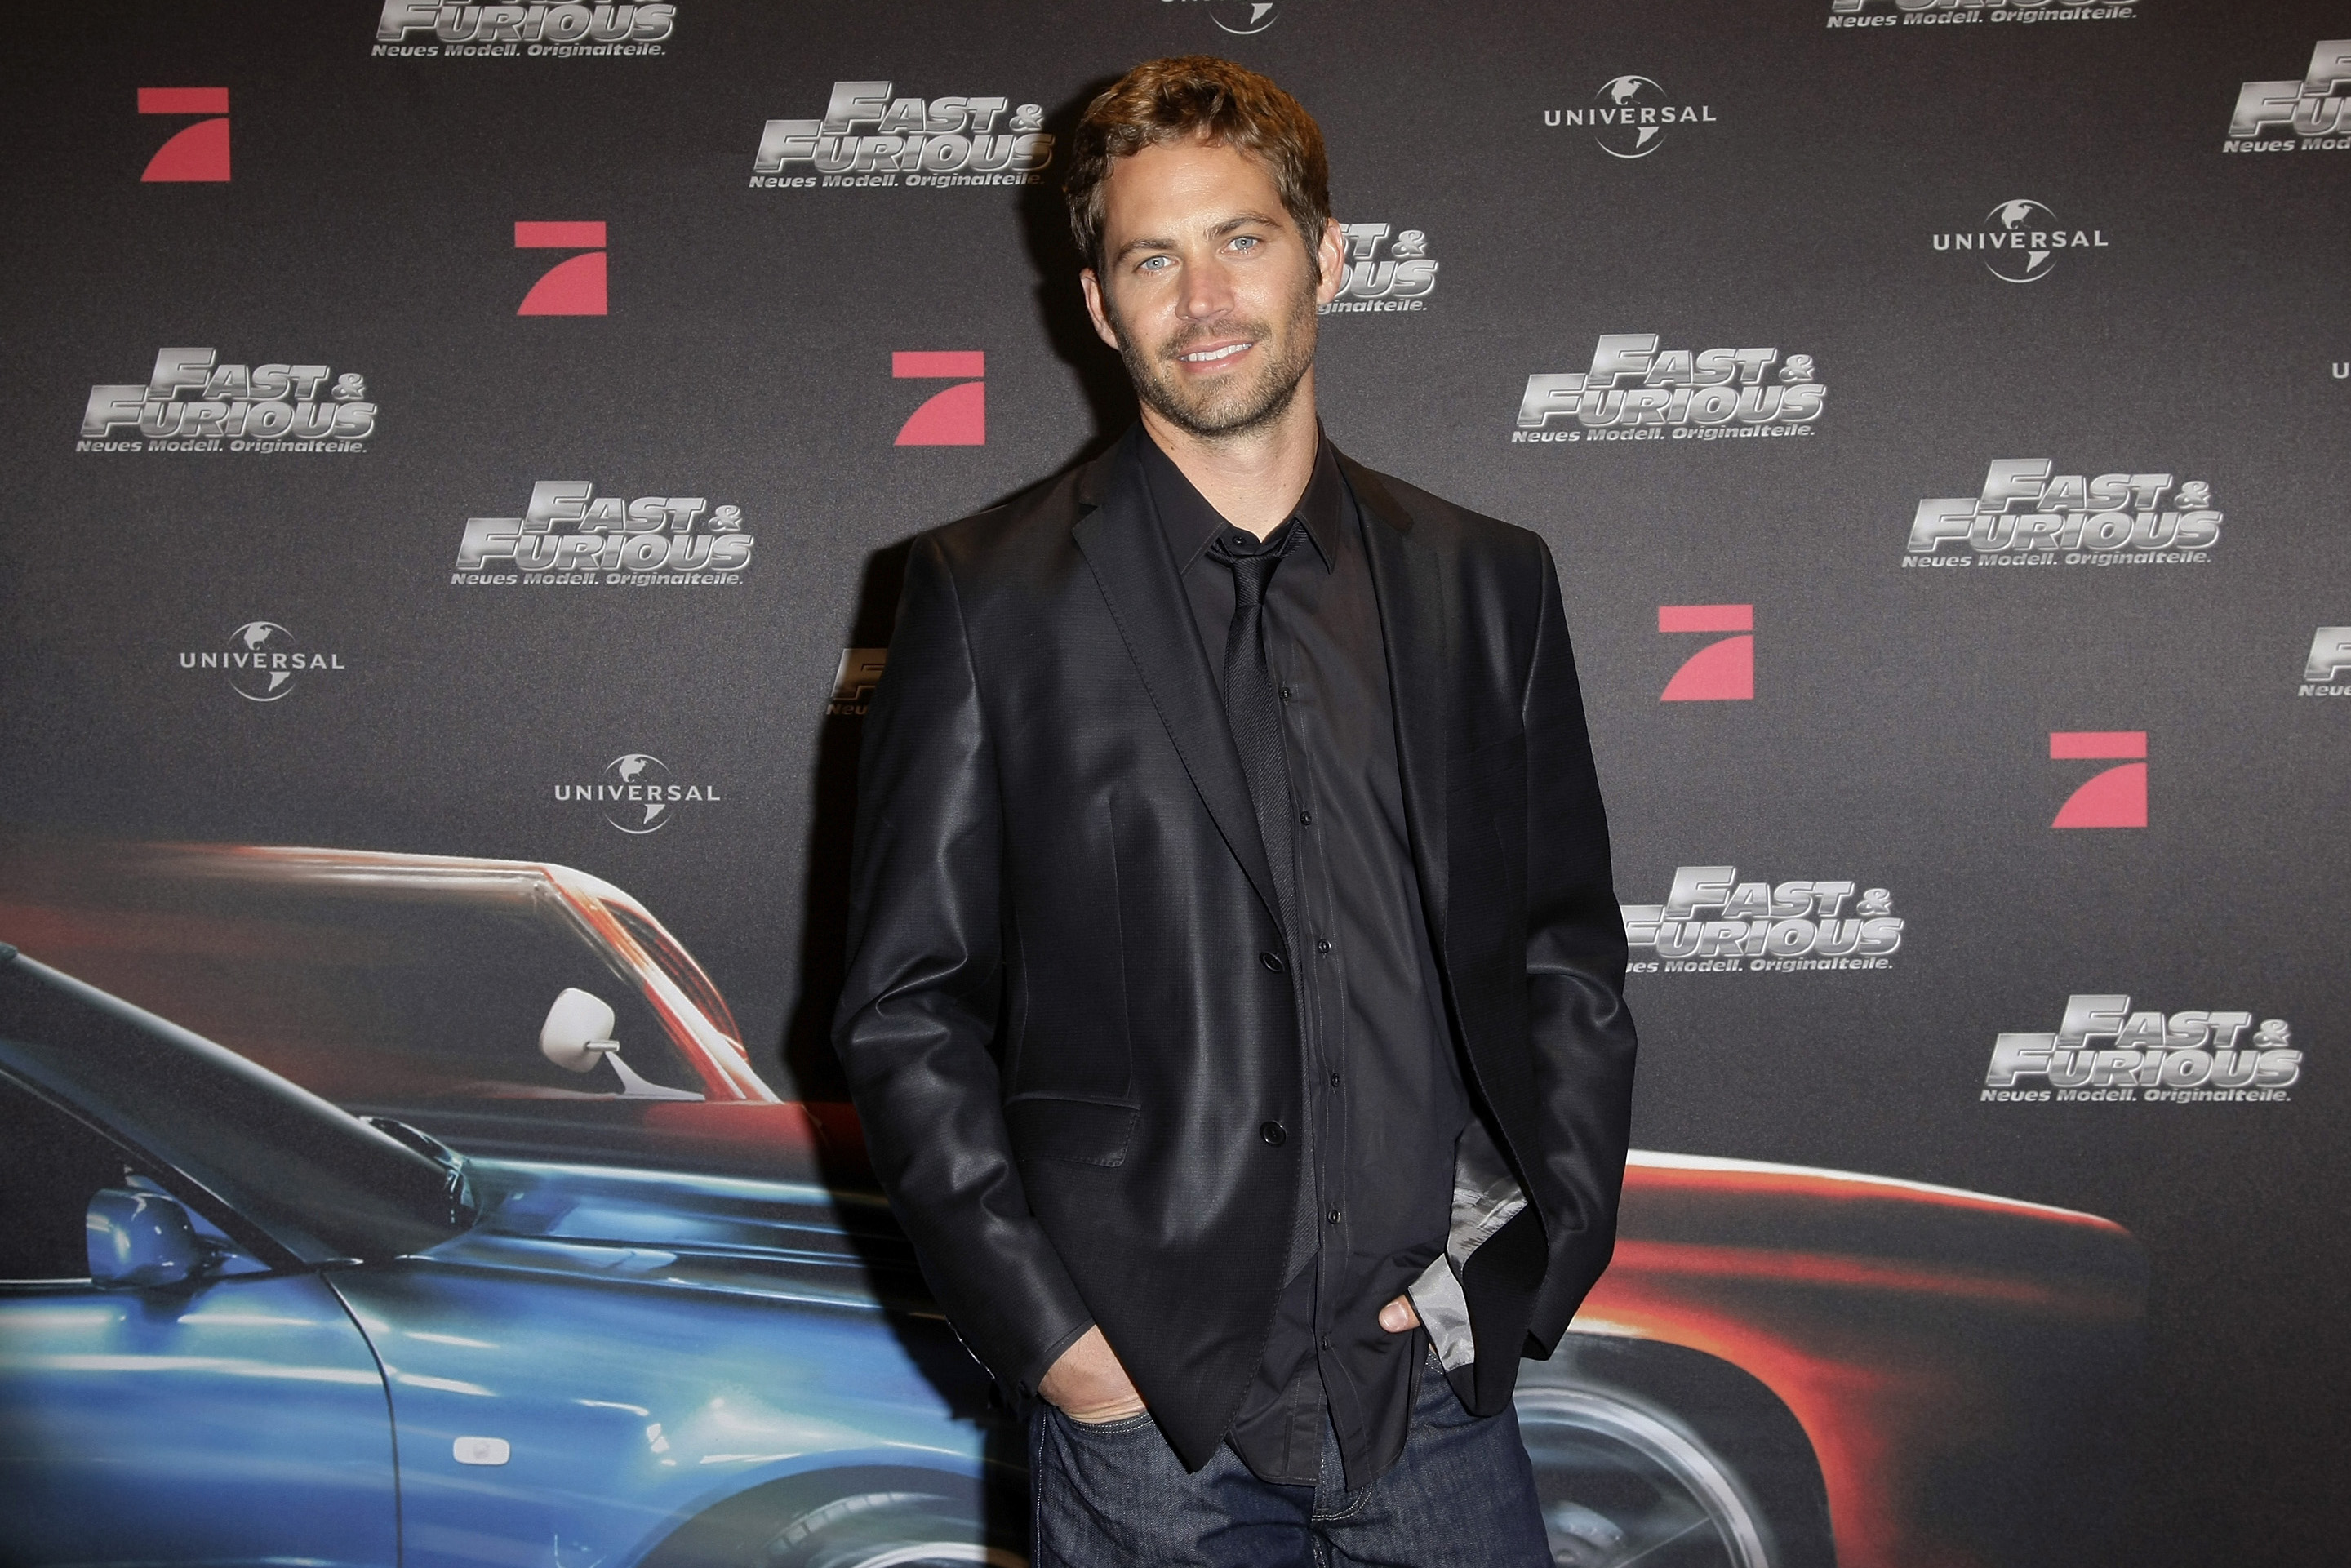 6) Paul Walker Dying in a Car Crash